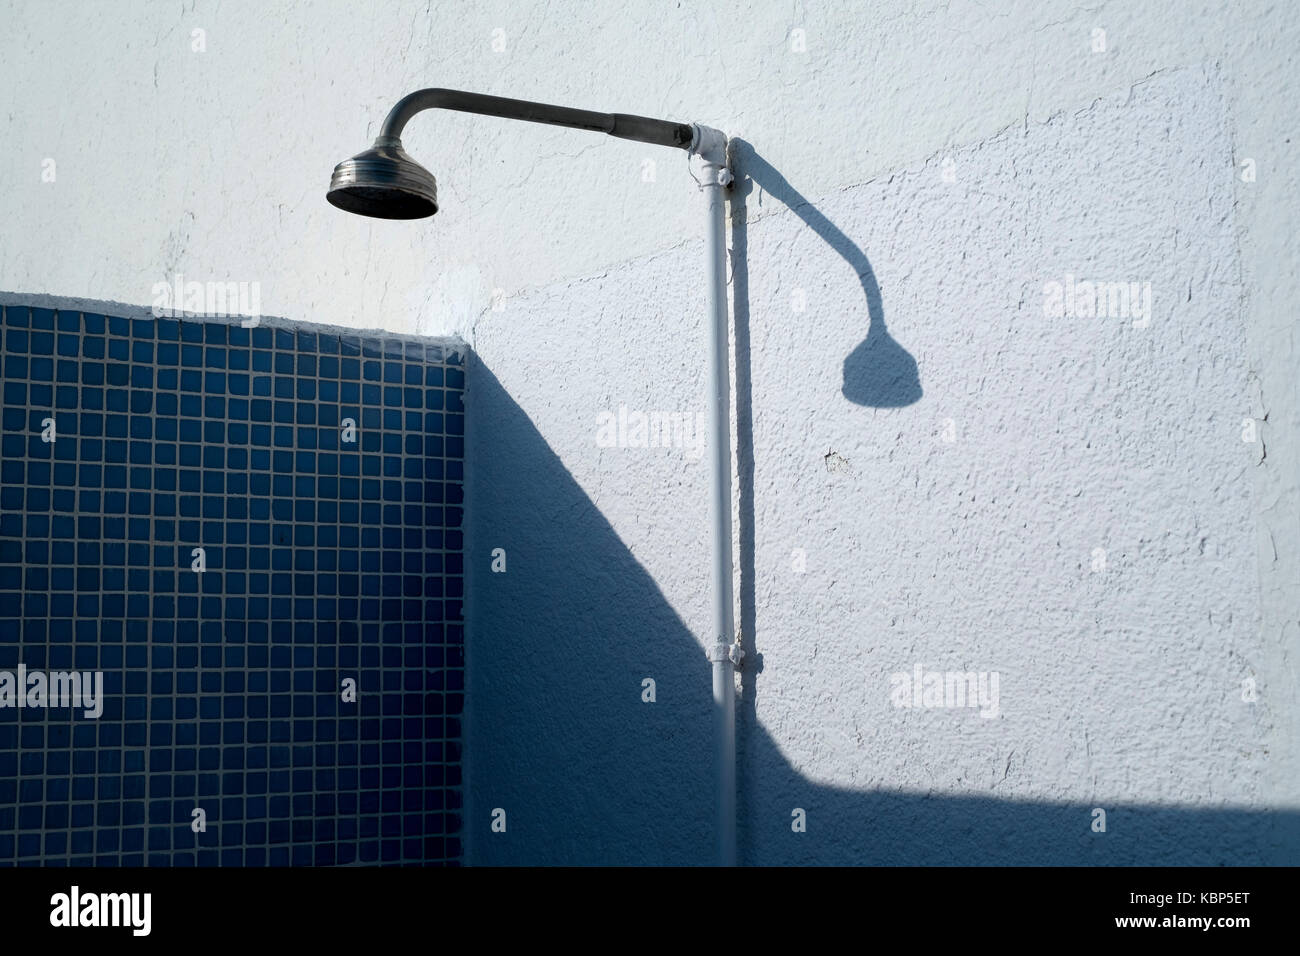 Outdoor shower by a pool at Hotel Ninays in Lloret de Mar, Spain Stock Photo